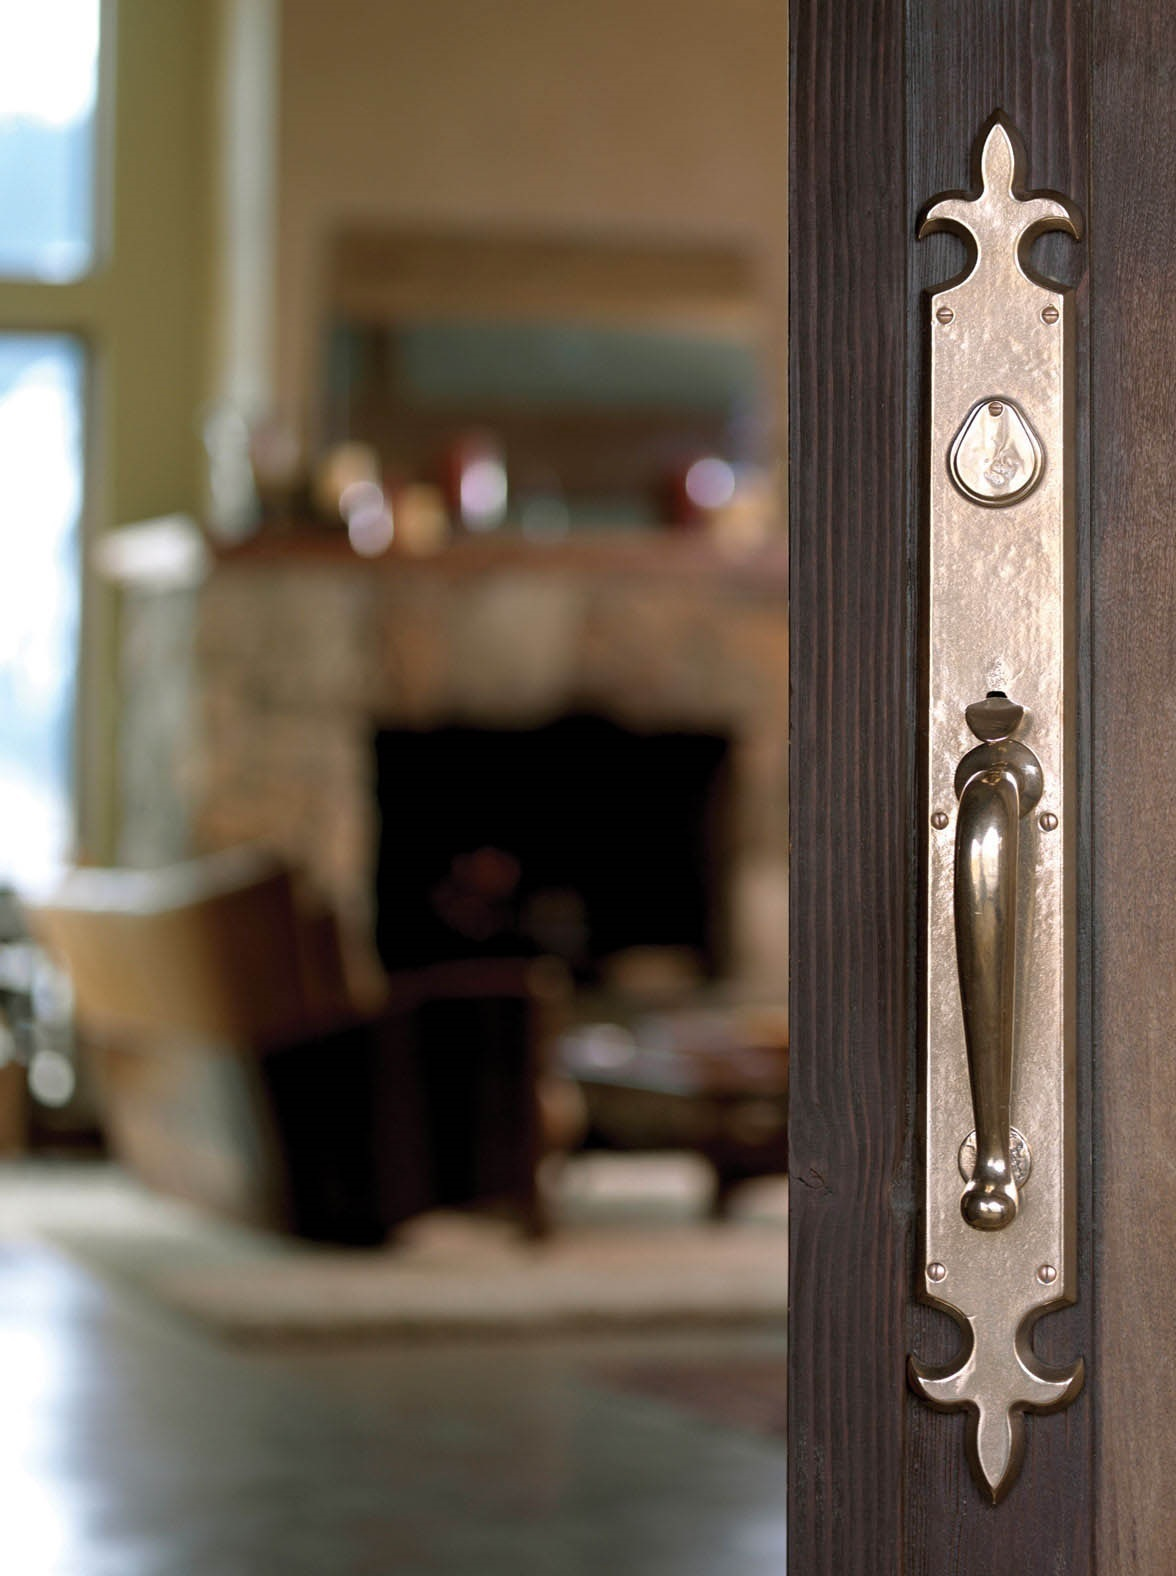 Architectural Hardware - HARBROOK showcases high quality Architectural Hardware with notable designers and manufacturers such as Rocky Mountain Hardware.